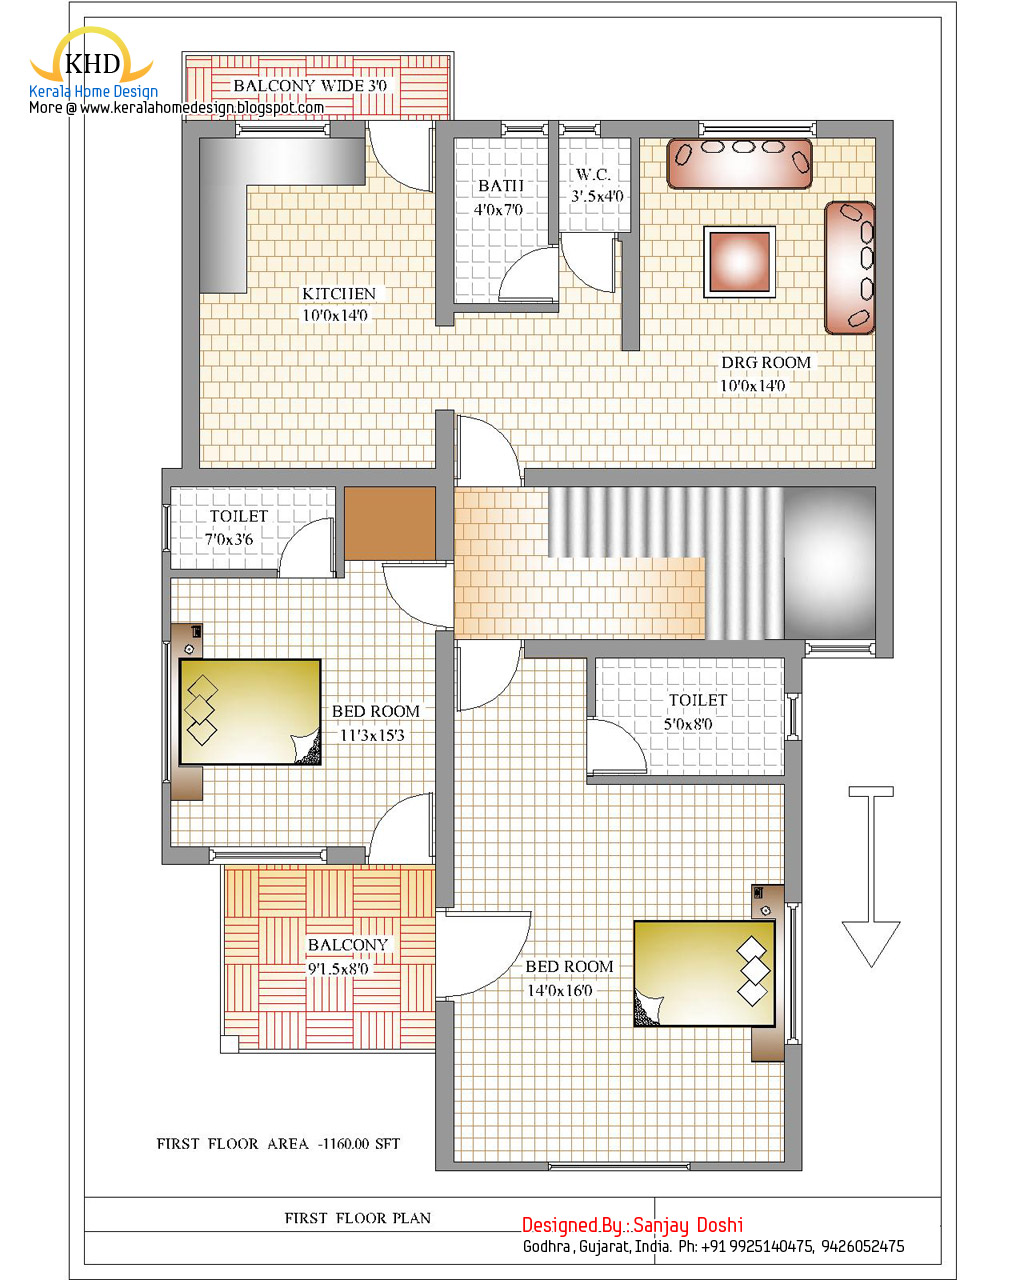 Duplex House Plan and Elevation First Floor Plan - 215 Sq M (2310 Sq ...